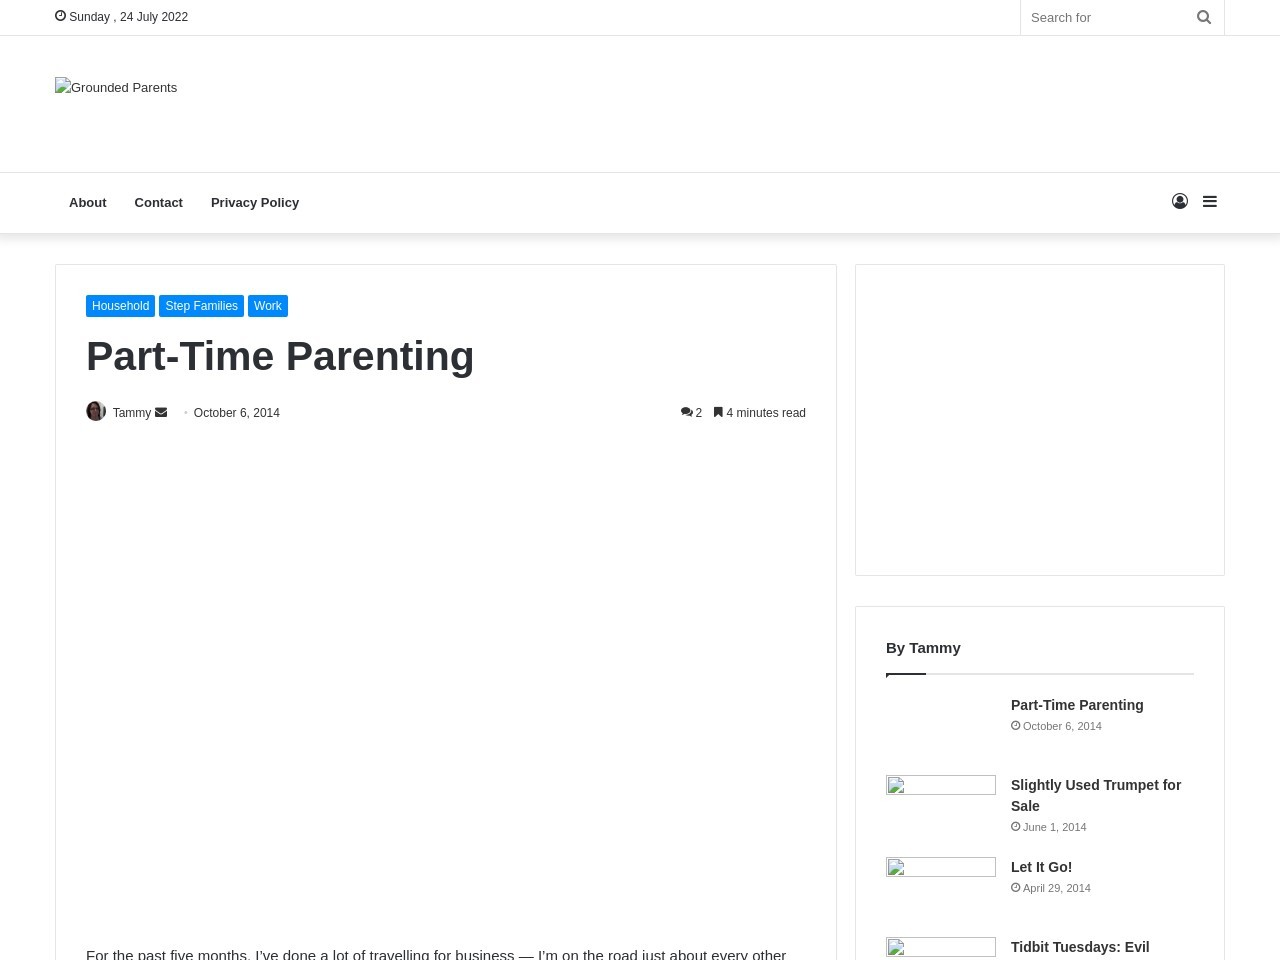 Grounded Parents | Part-Time Parenting